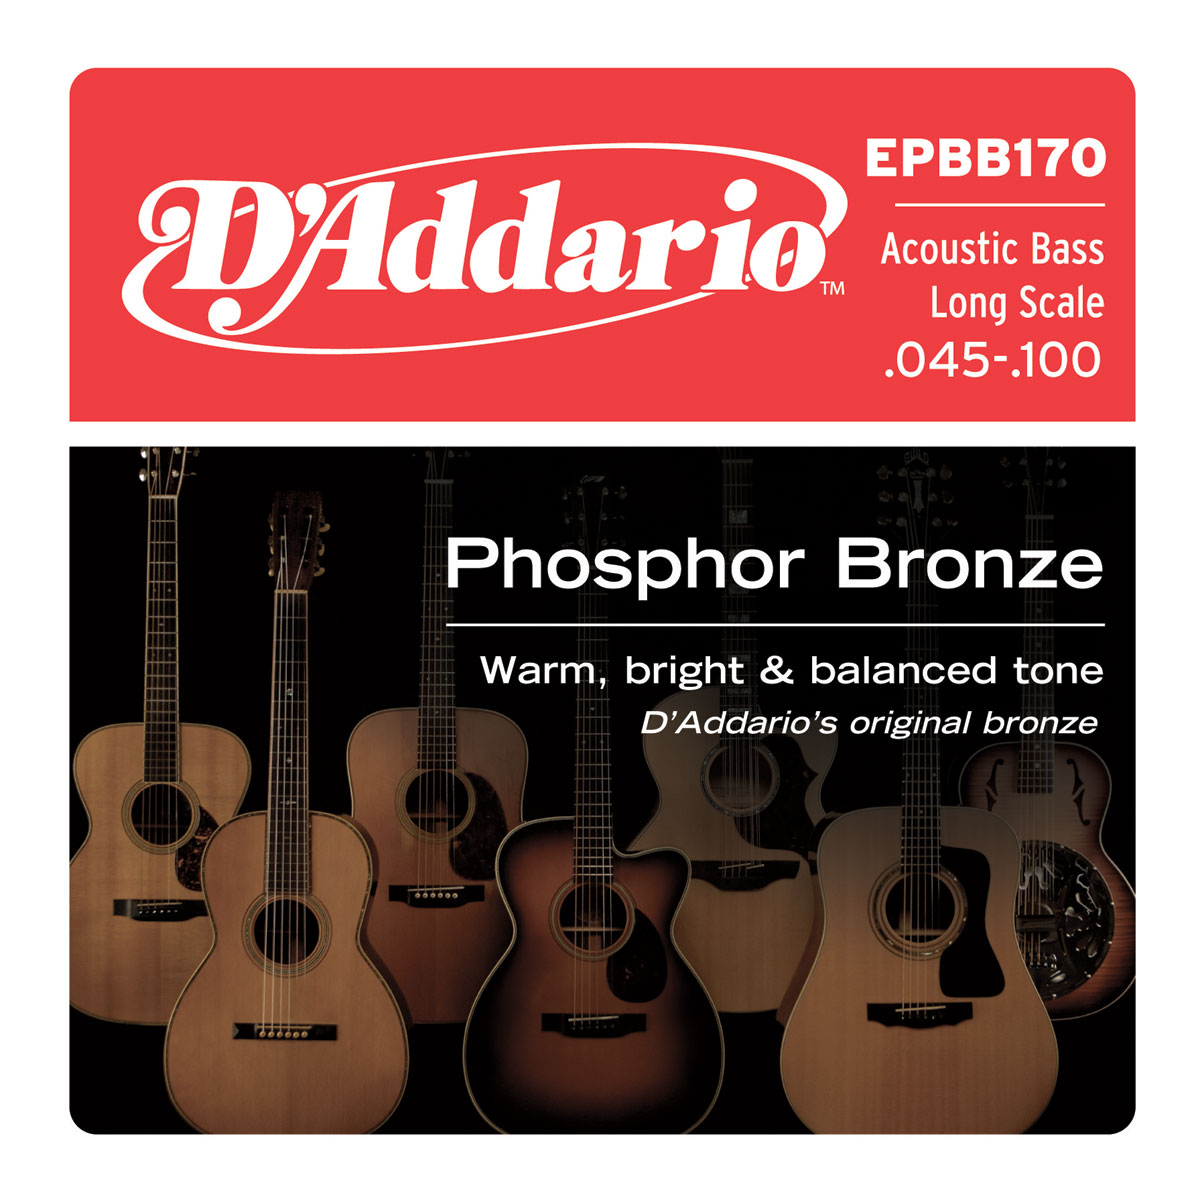 Acoustic Phosphor Bronze 45/100